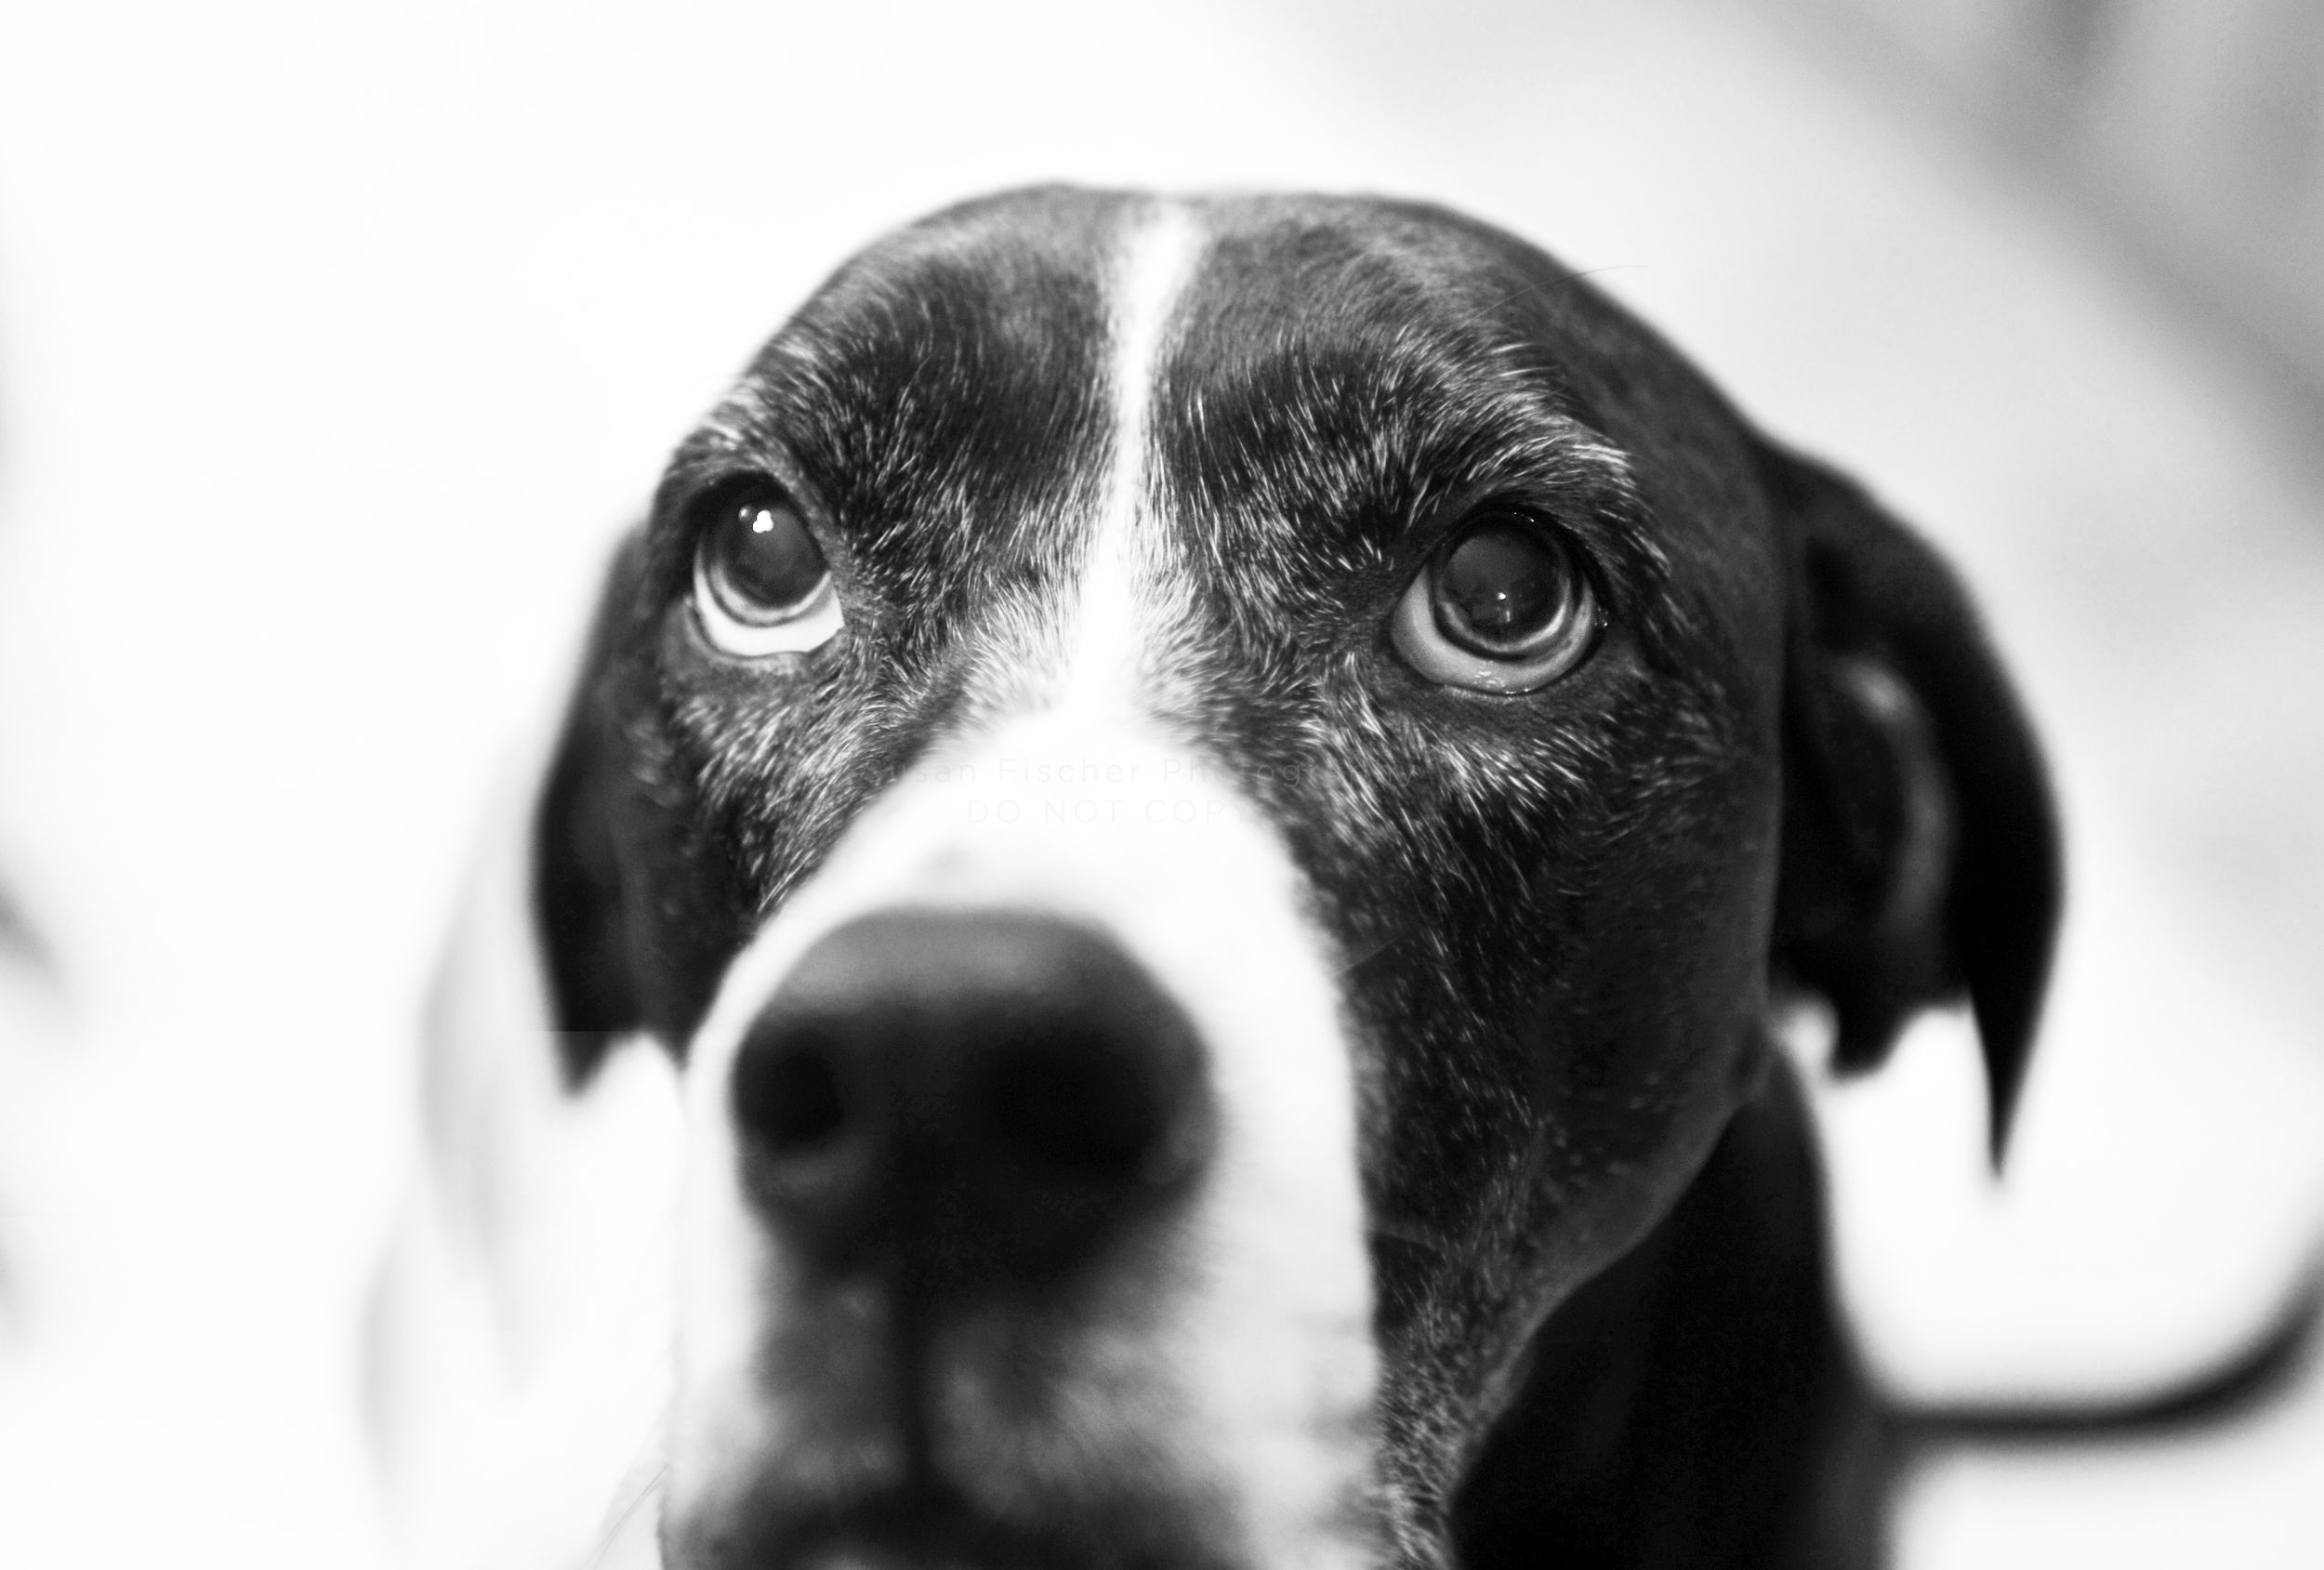 Black and white portrait of a black and white dog